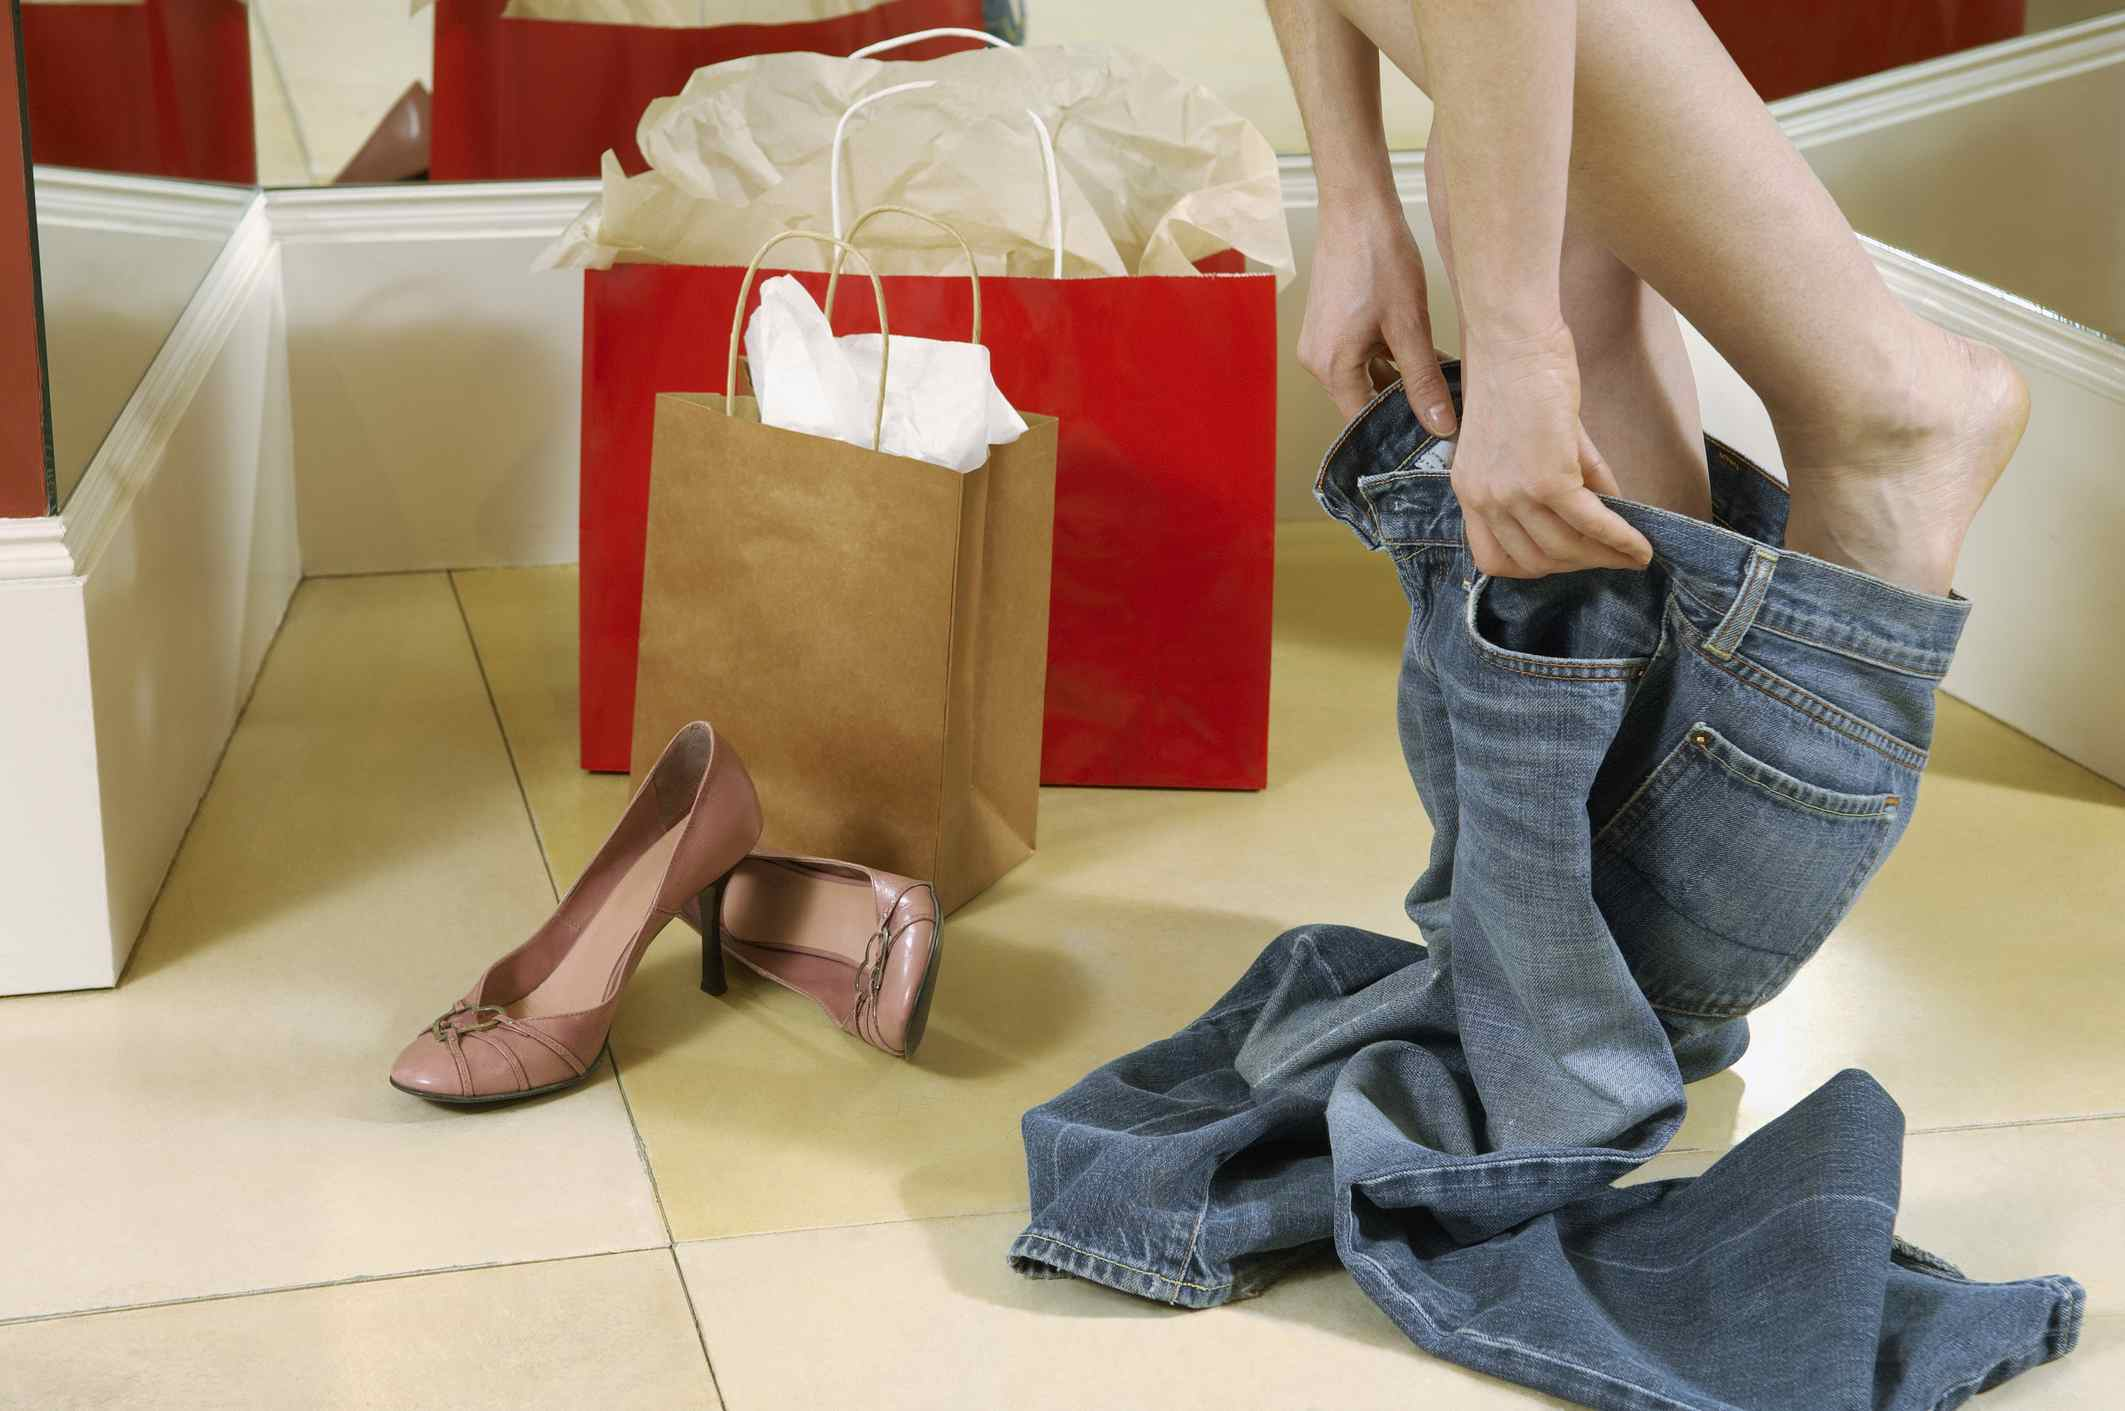 Woman trying on jeans in store change room